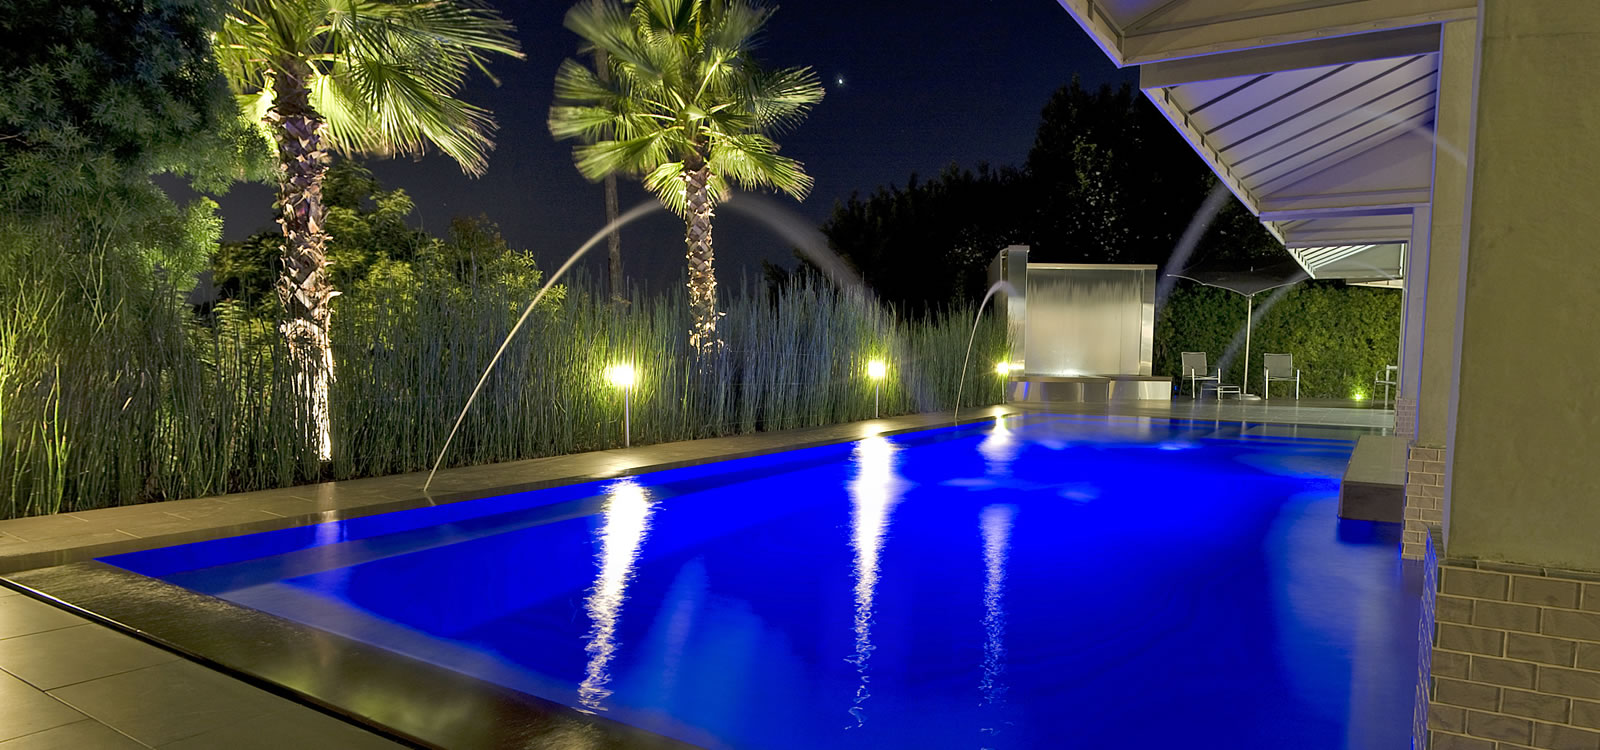 John Crystal Pools Los Angeles Southern California Pool Designer Swimming Pool Builder For